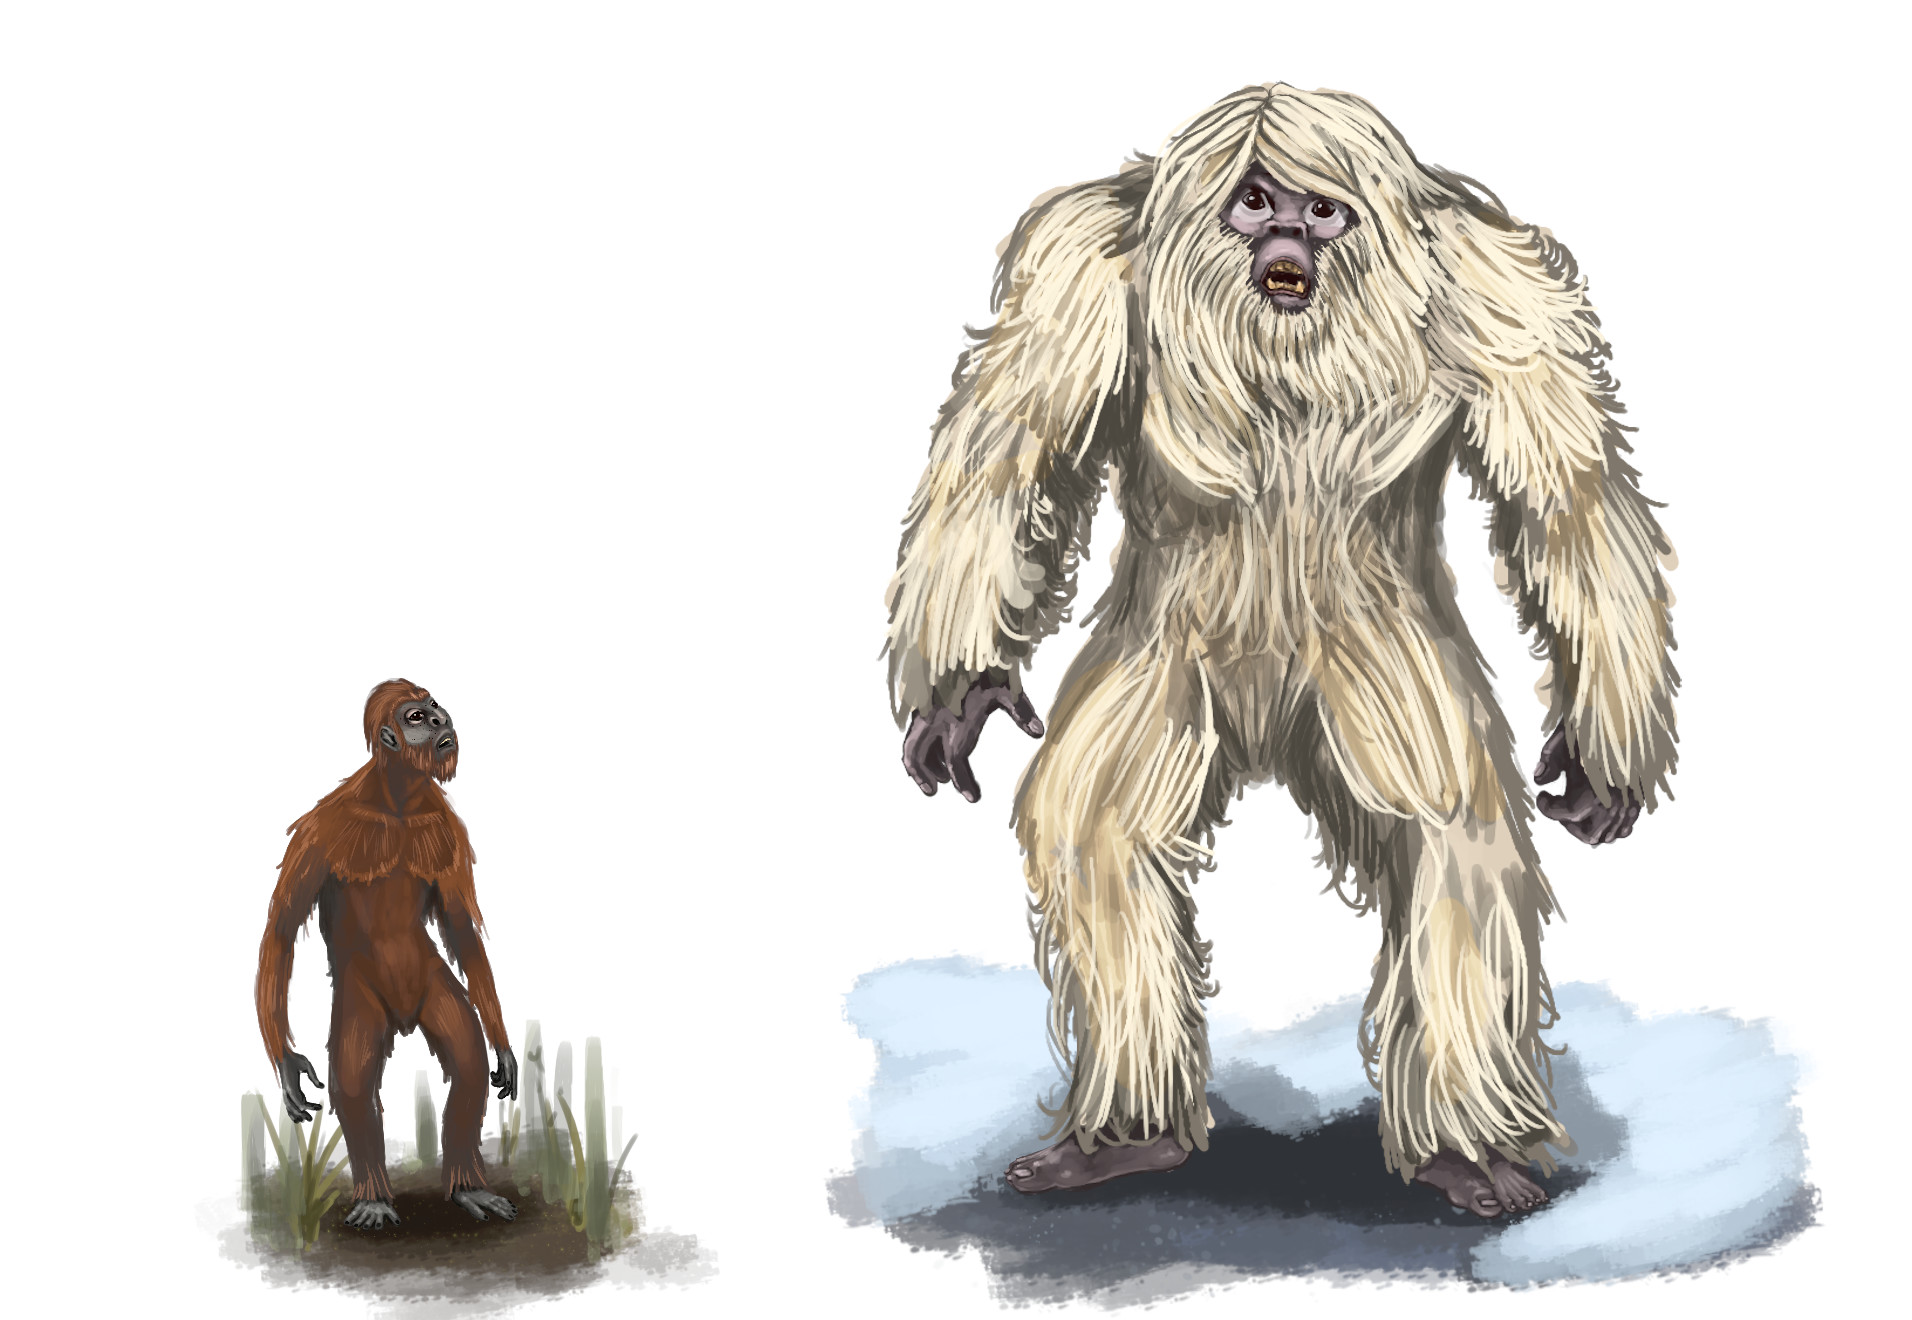 Orang Pendek and the Yeti